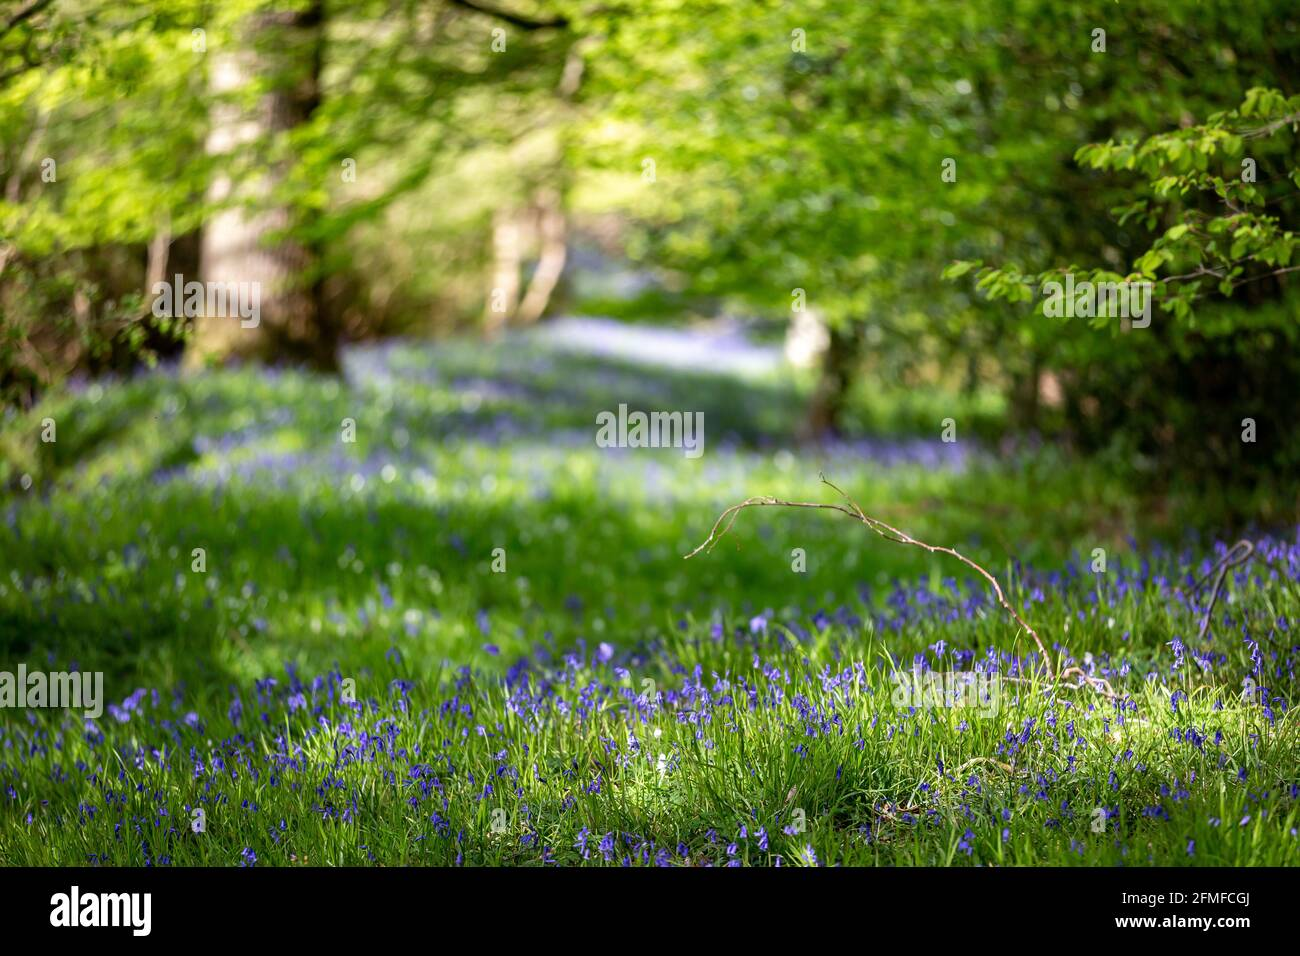 Bluebells growing in Sussex woodland, with a shallow depth of field Stock Photo